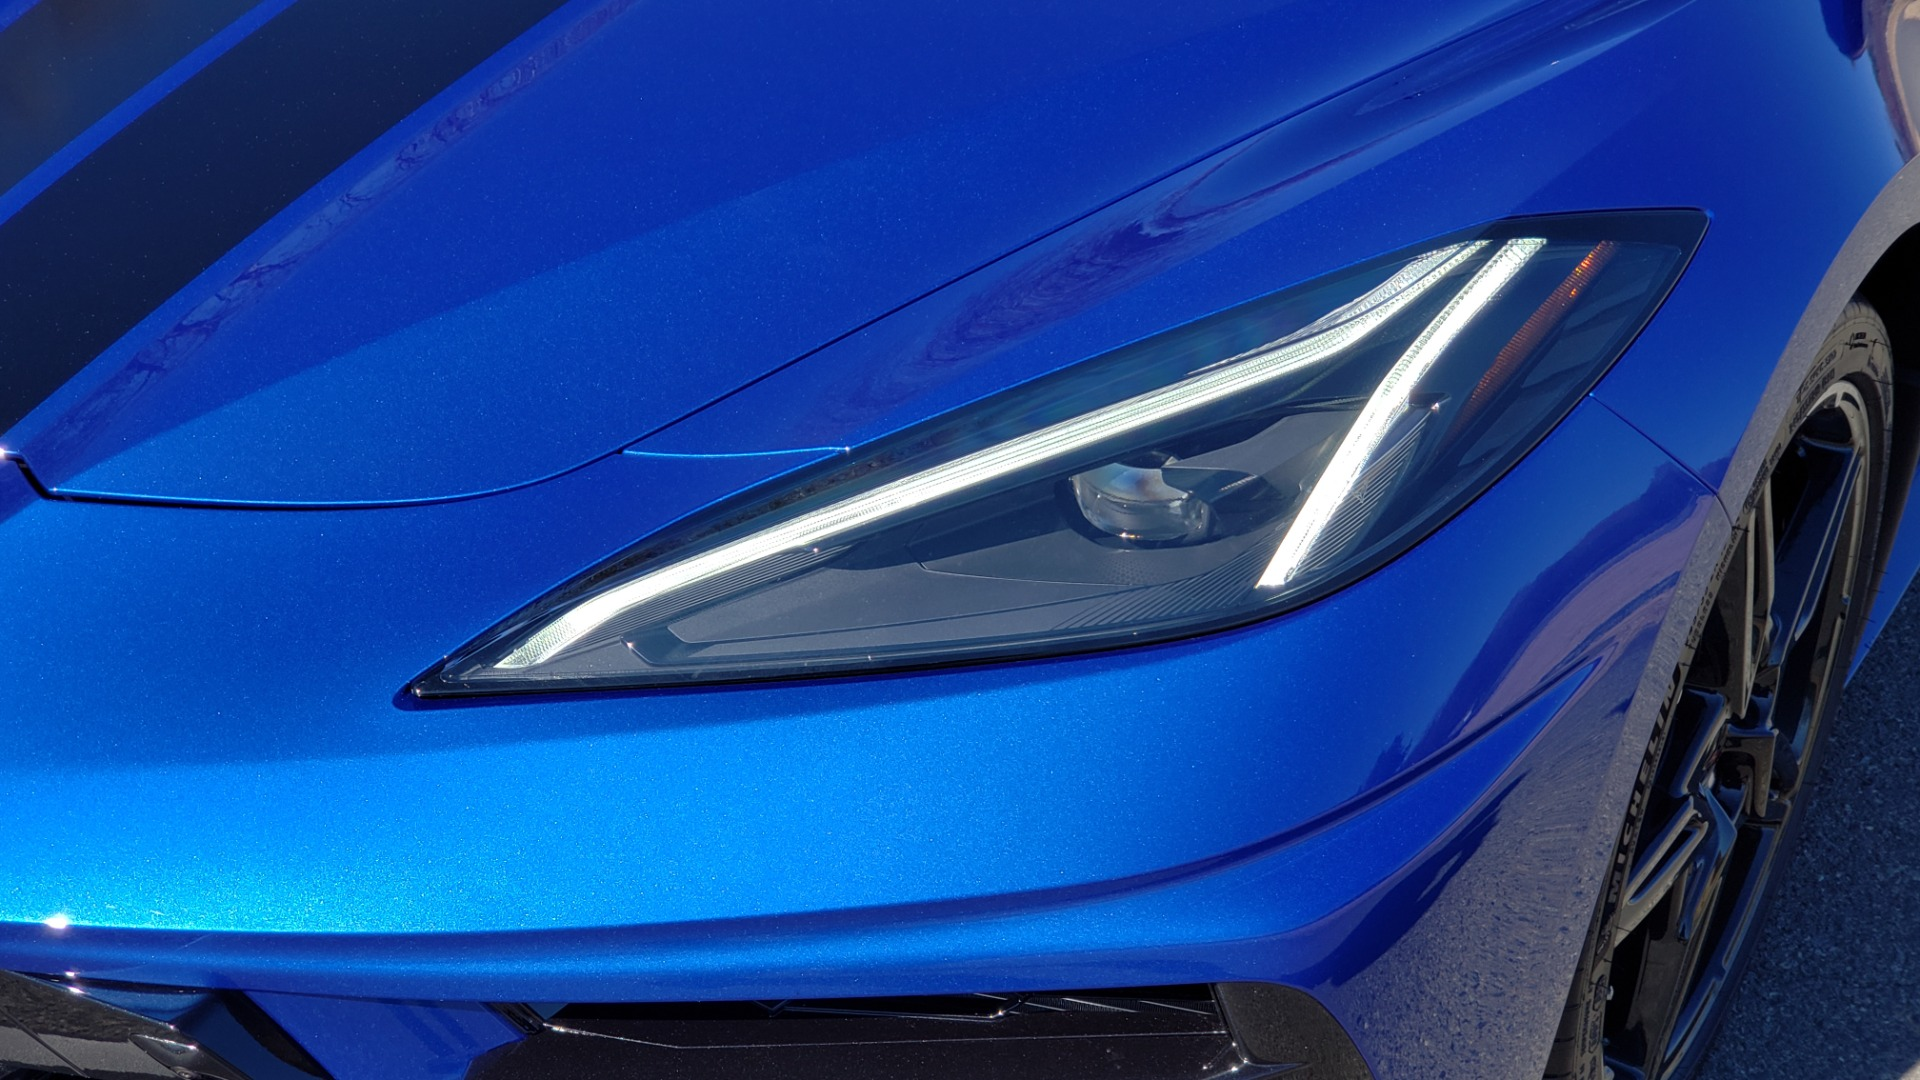 Used 2020 Chevrolet C8 CORVETTE STINGRAY 2LT COUPE / NAV / HUD / BOSE / GT2 SEATS / FRONT LIFT / REARVIEW for sale Sold at Formula Imports in Charlotte NC 28227 34